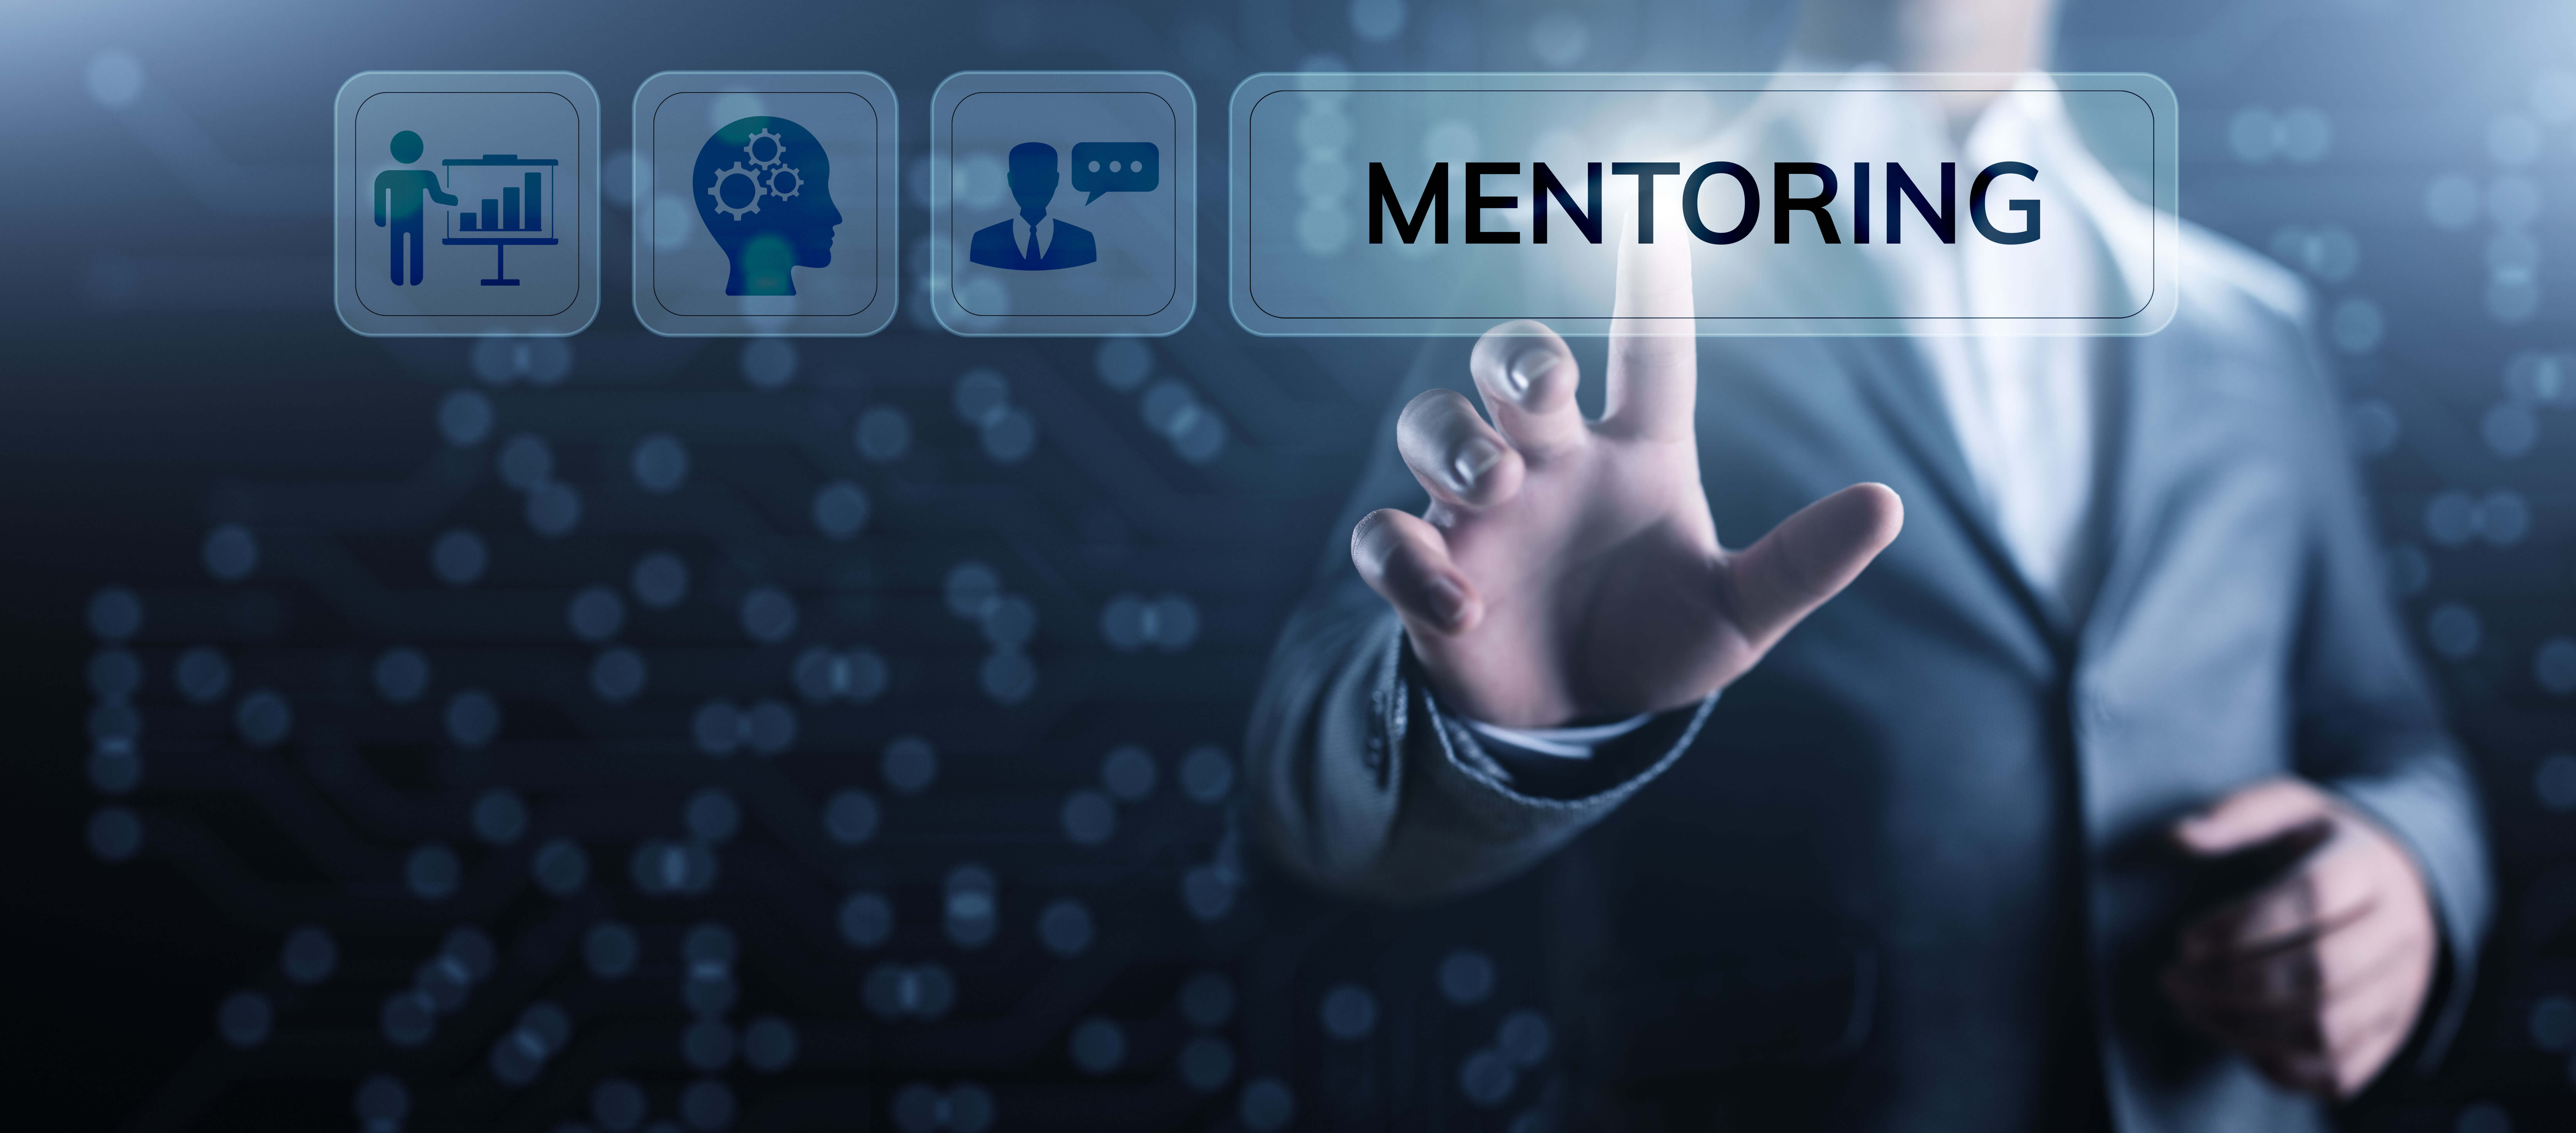 The Often Subtle Ways Having a Mentor Can Improve Your Business